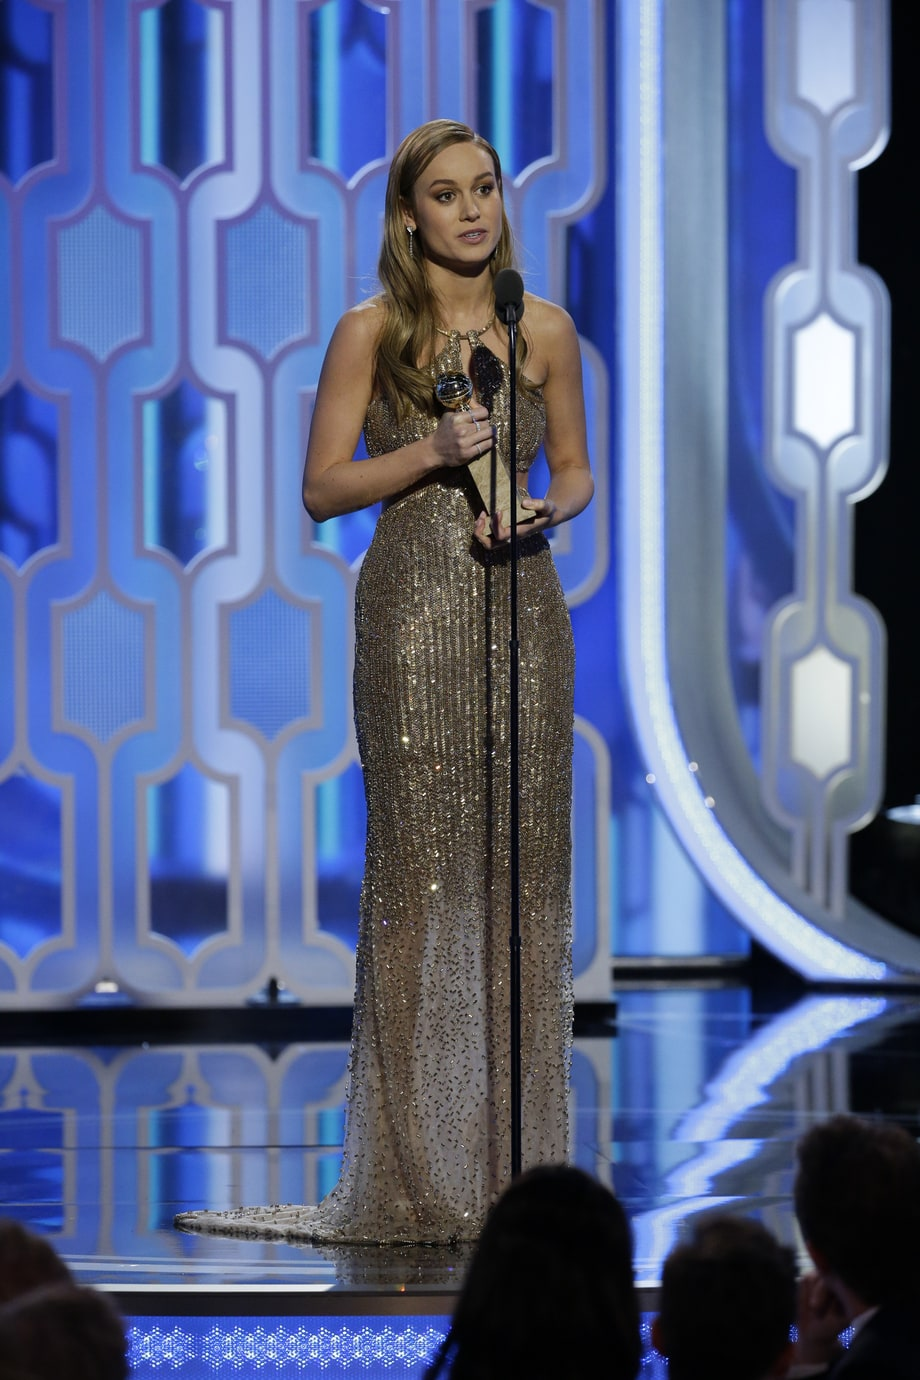 Best: Brie Larson Wins for 'Room'